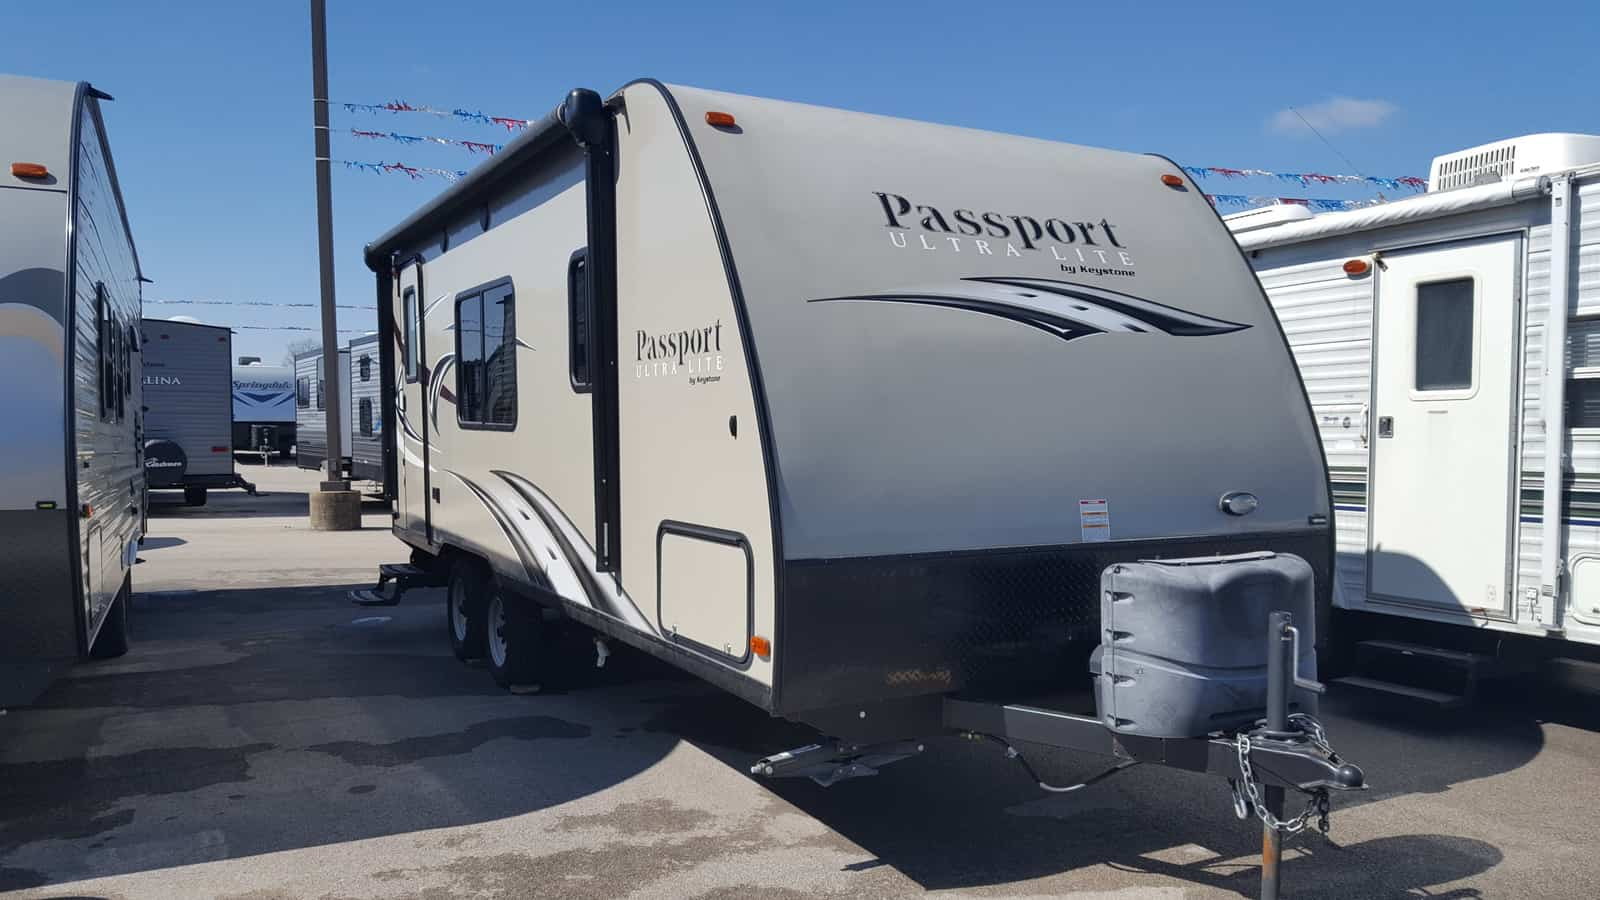 USED 2016 Keystone PASSPORT 195RB - American RV